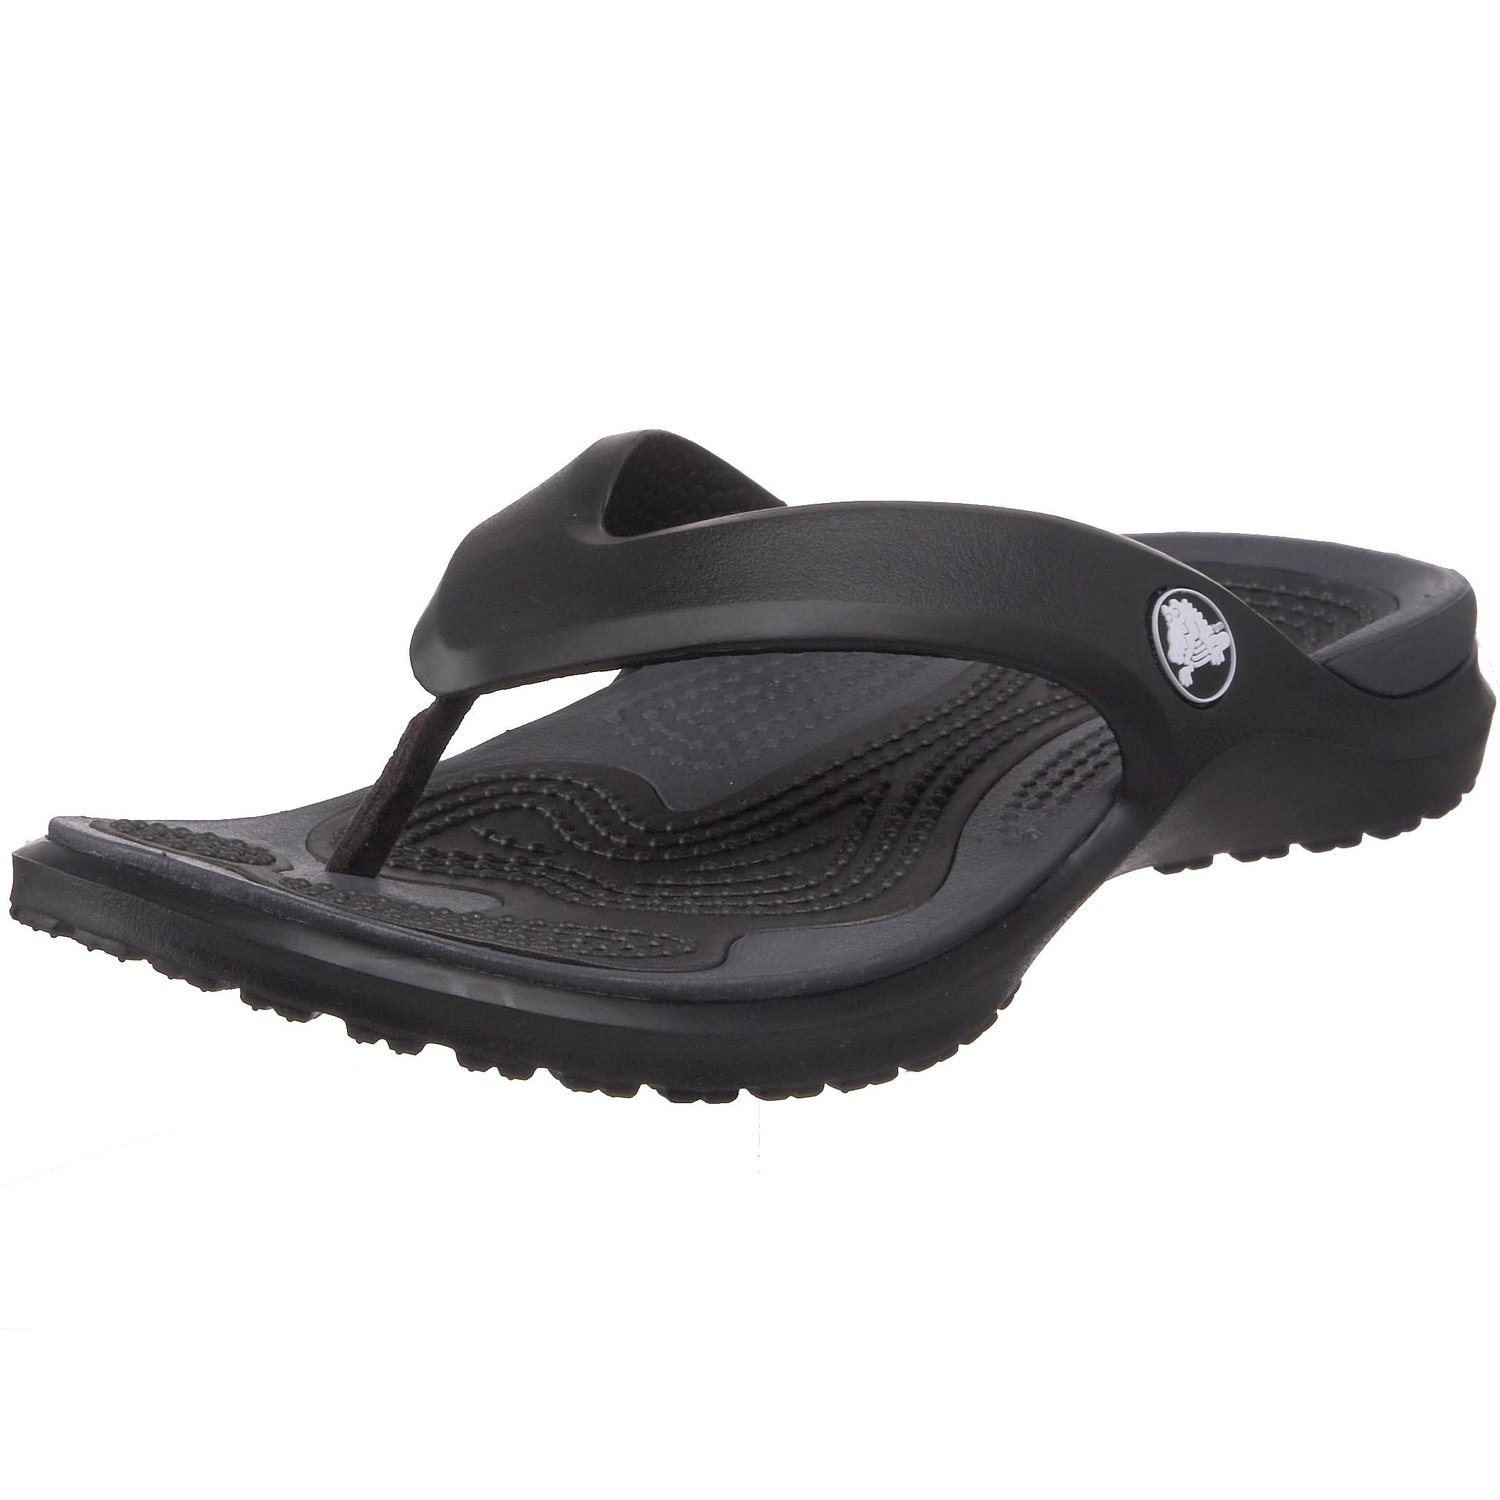 32563db8b crocs Unisex MODI Flip-Flop in BlackGraphite Color